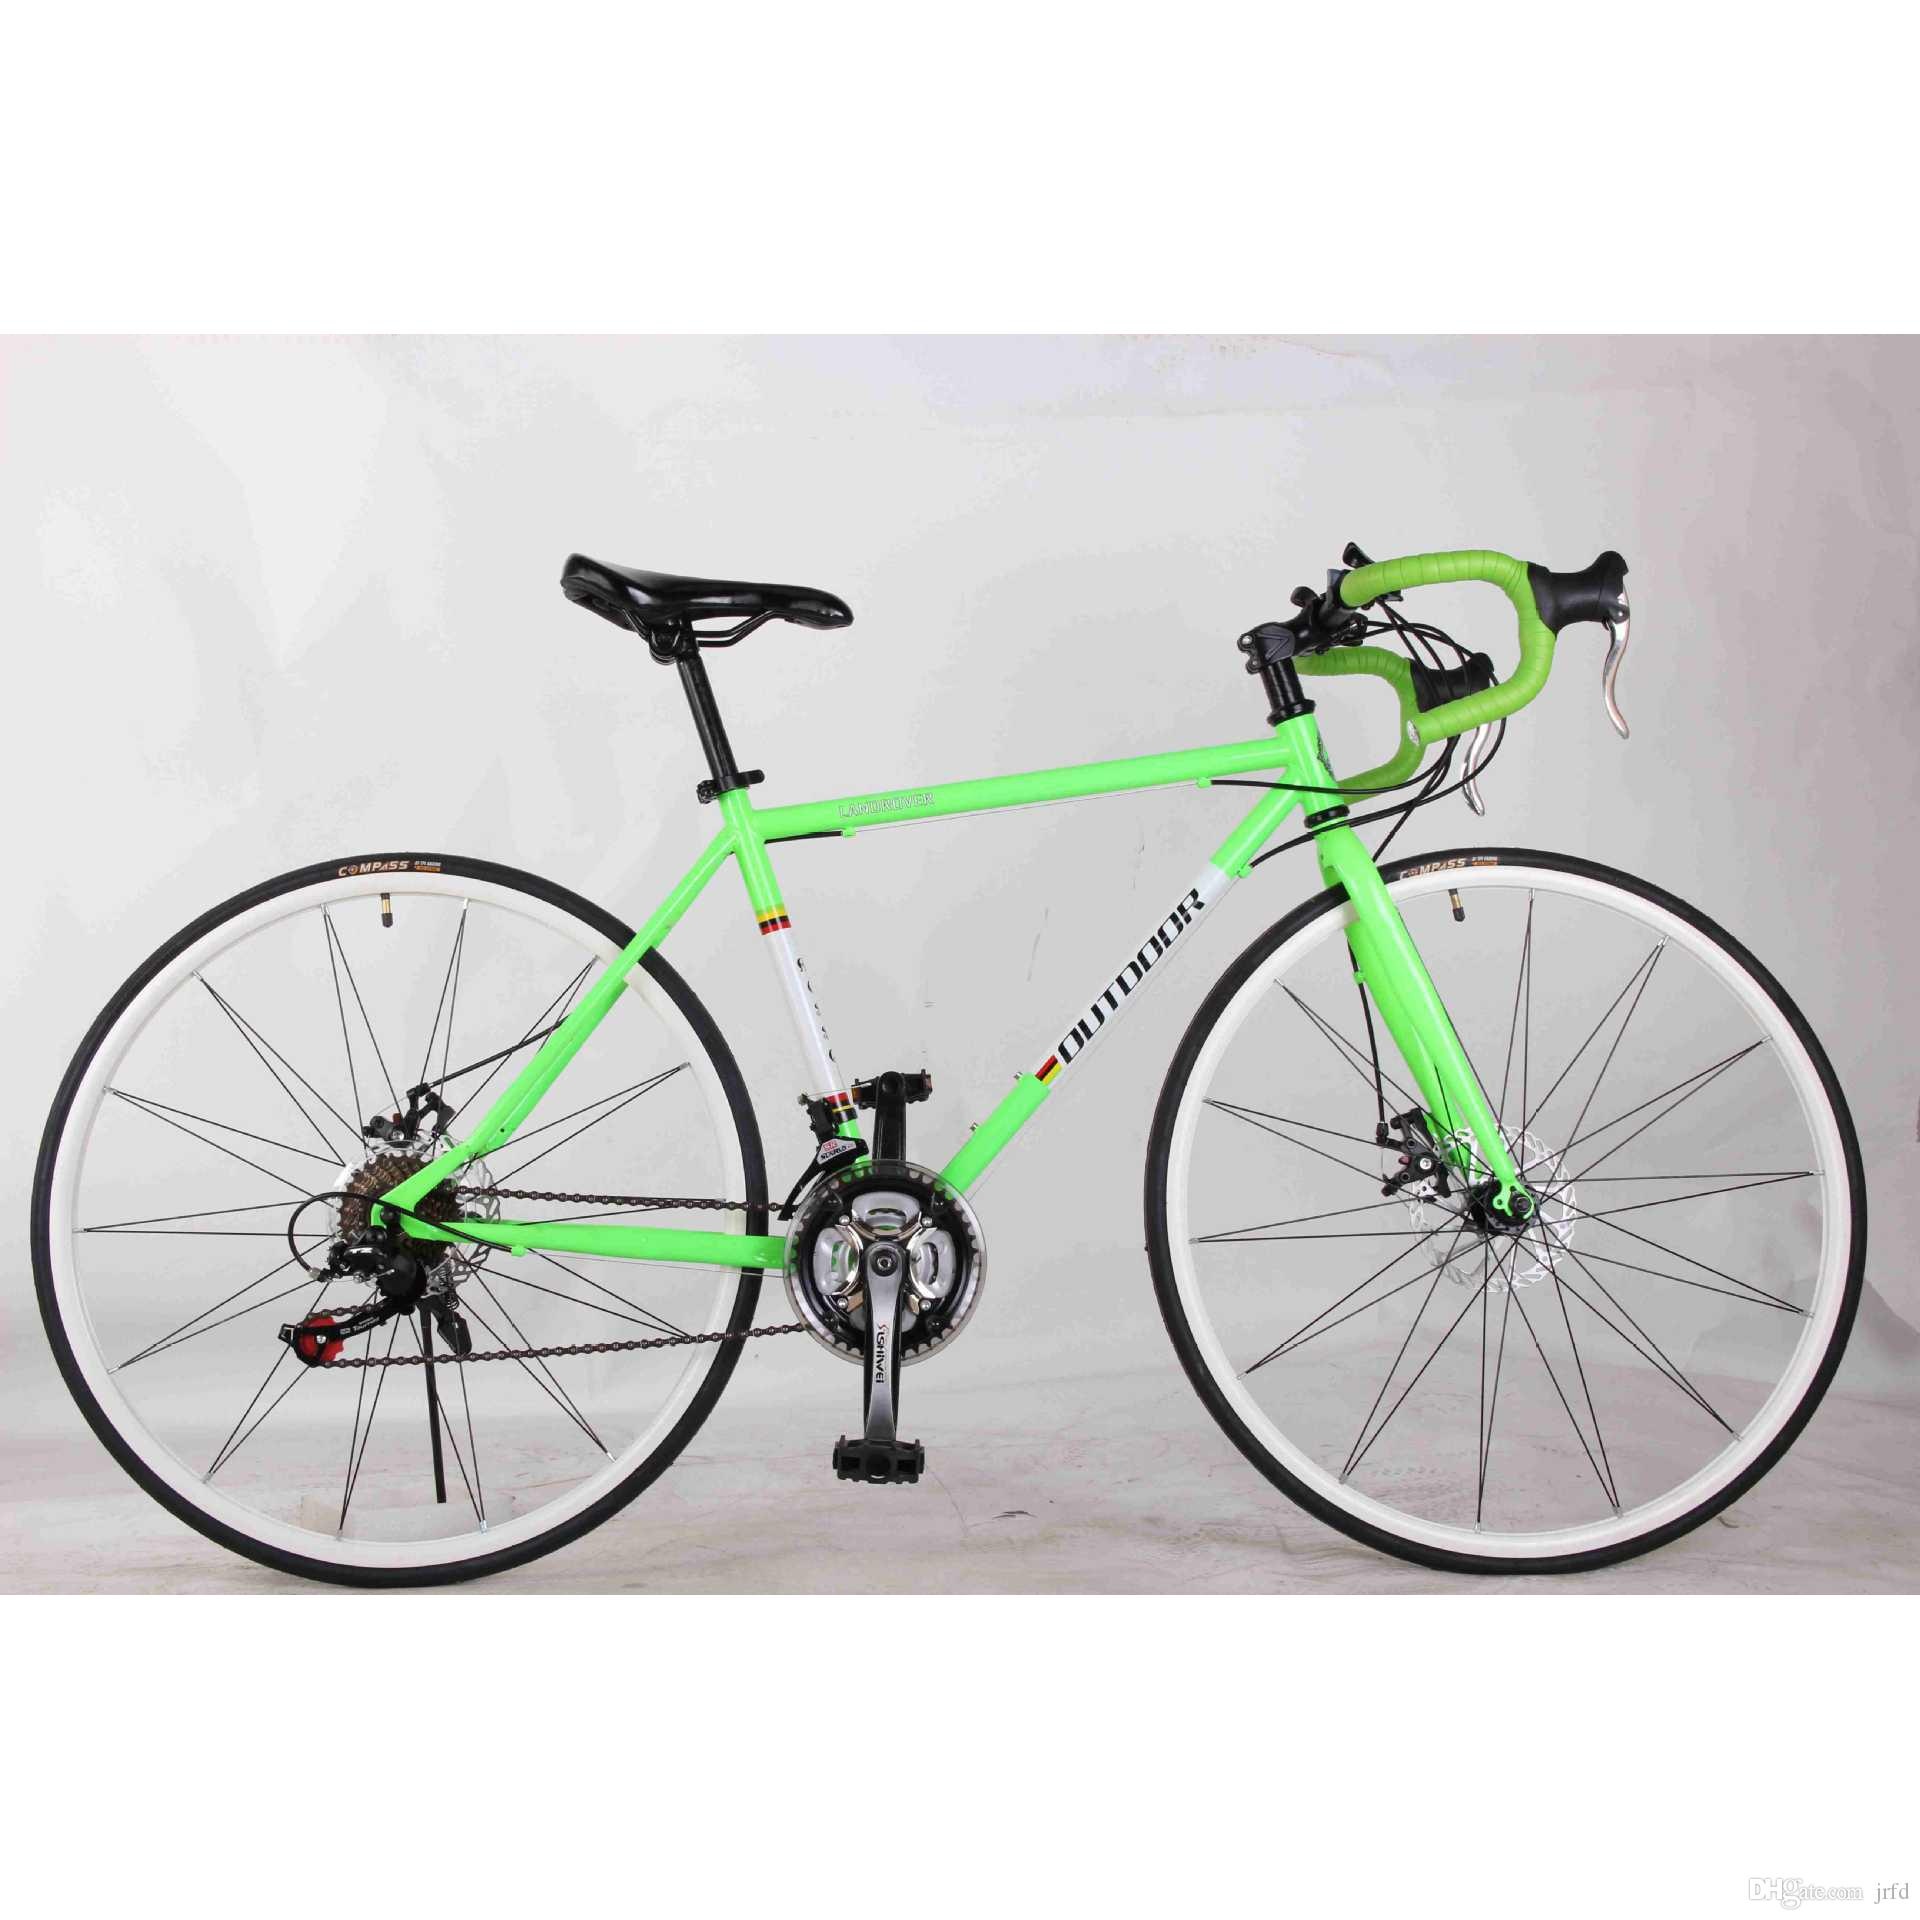 New Road Bike 700c Disc Brake High Carbon Steel Frame Spinning Bike ...